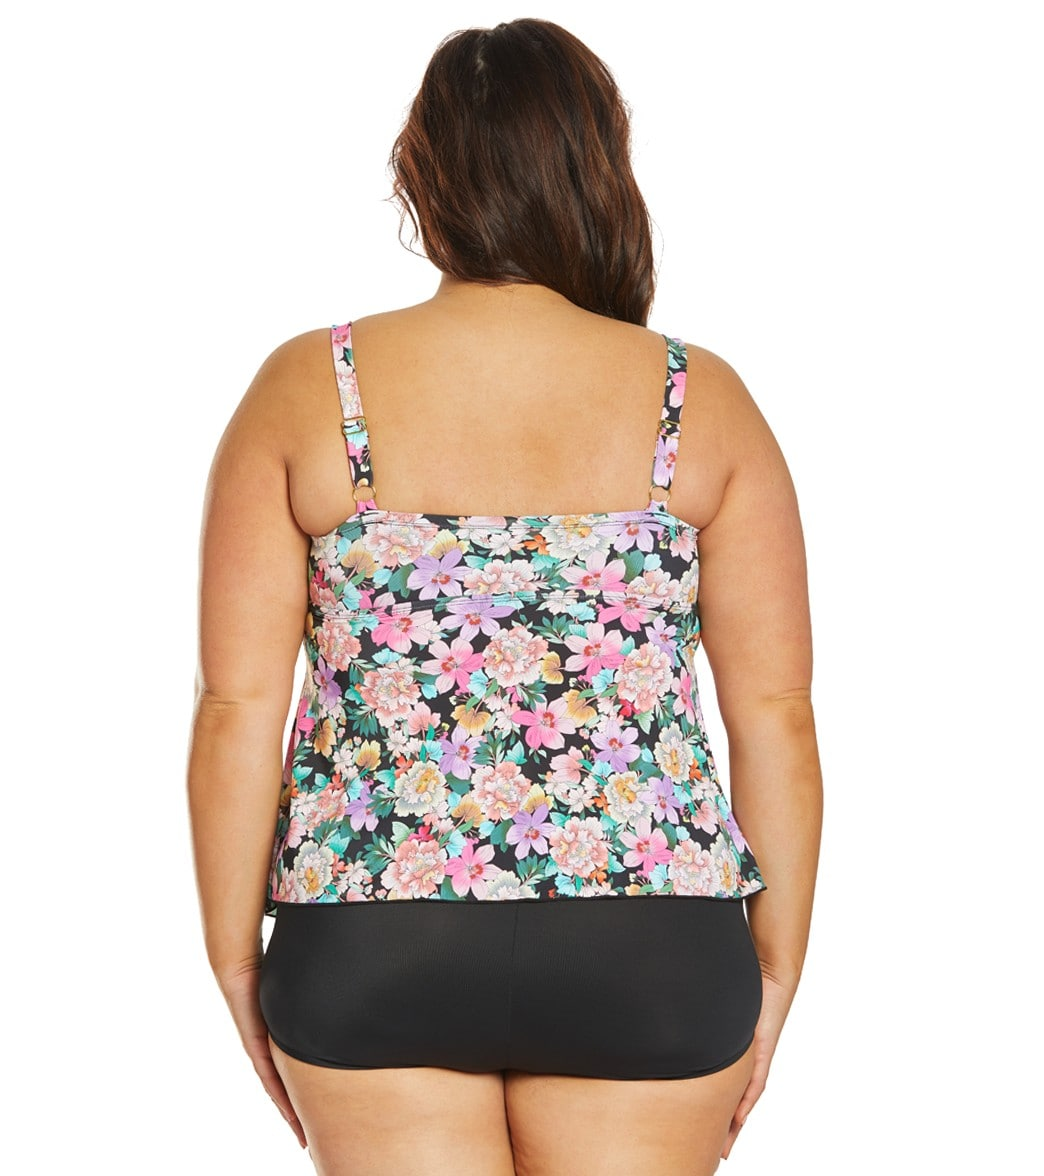 1a42904658 Fit4U Plus Size Love Story Waterfall Tankini Top at SwimOutlet.com ...